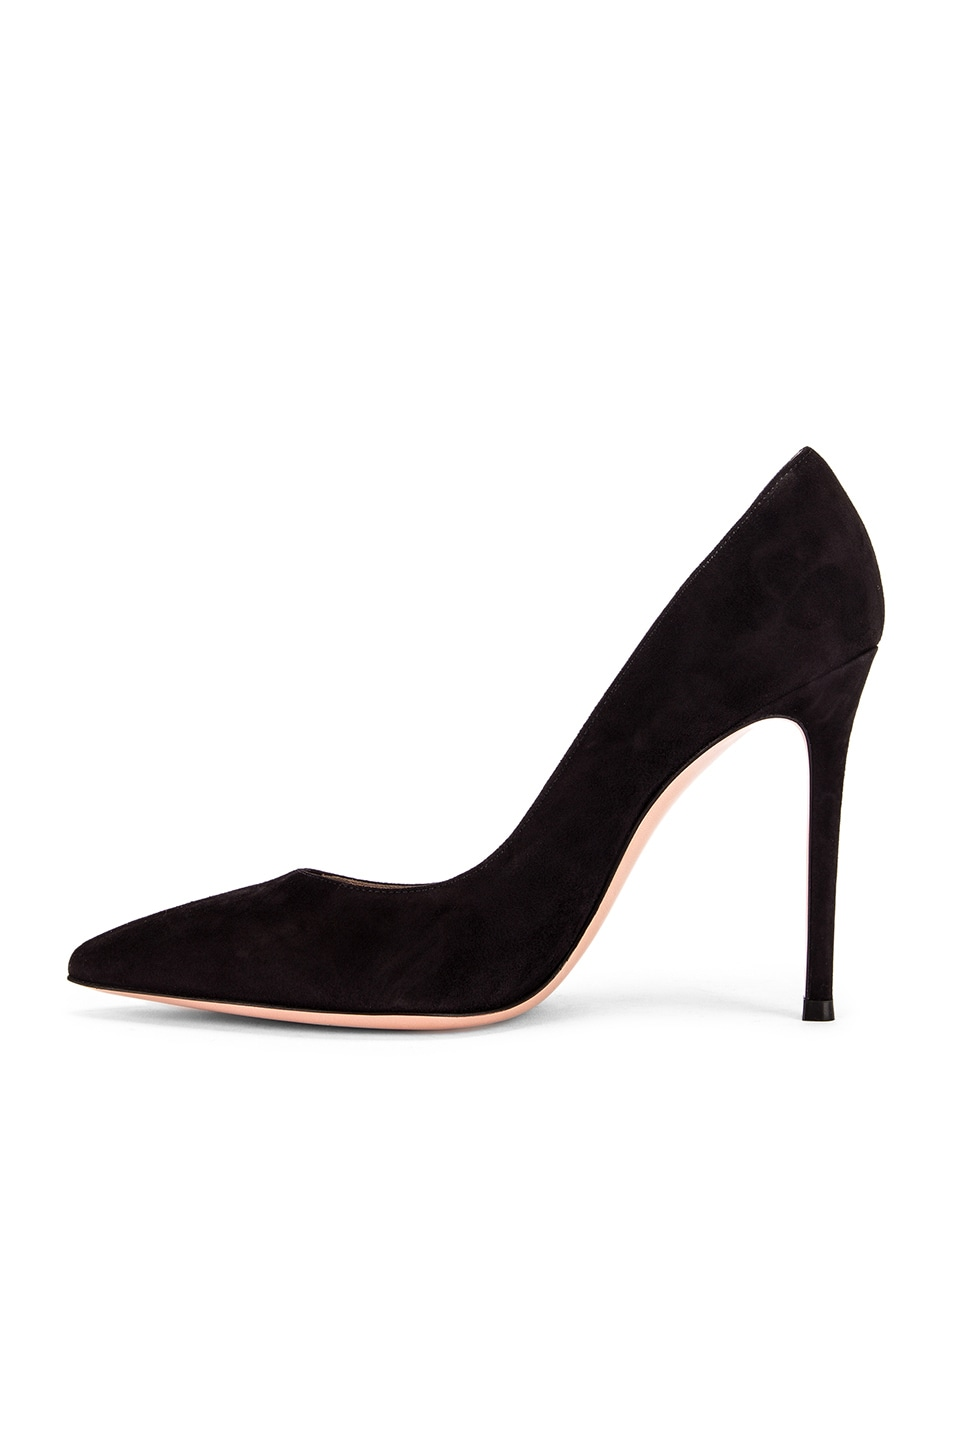 Image 5 of Gianvito Rossi Suede Gianvito Pumps in Black